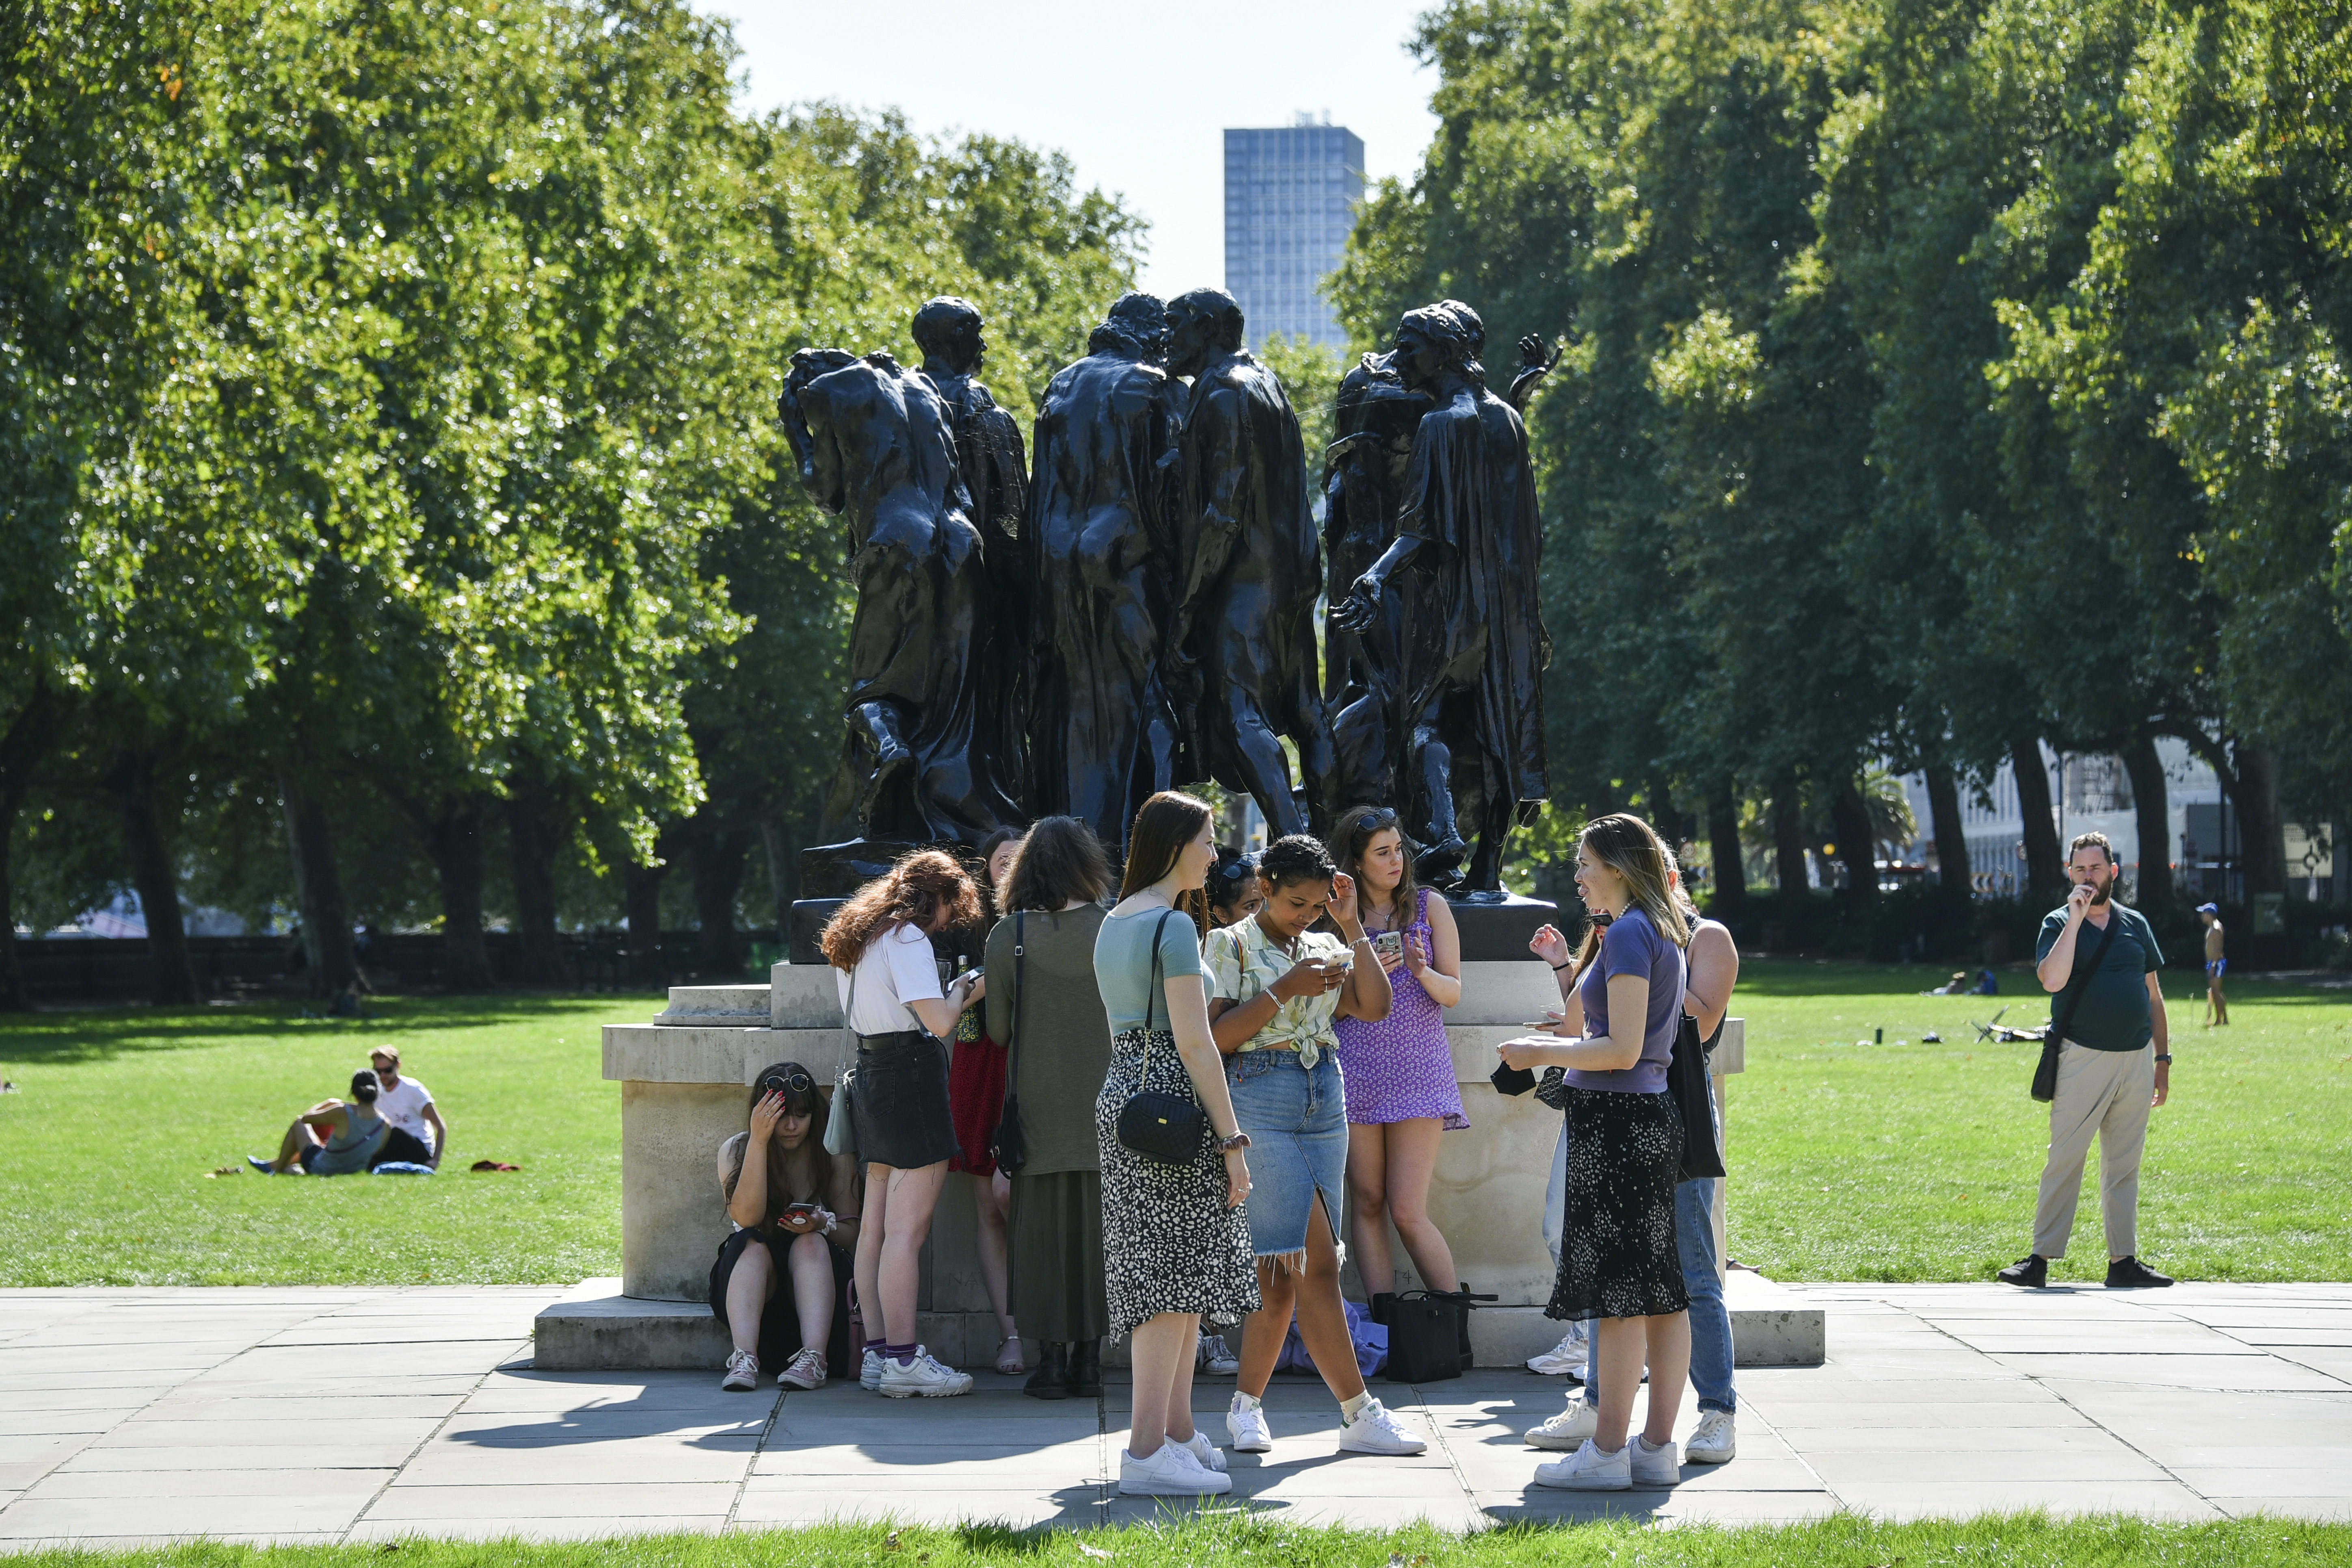 A group of people walk in Victoria Gardens, in London, Sunday, Sept. 13, 2020. From Monday, social gatherings of more than six people will be banned in England — both indoors and outdoors — and Boris Johnson hinted that such restrictions will potentially remain in place until or through Christmas. (AP Photo/Alberto Pezzali)